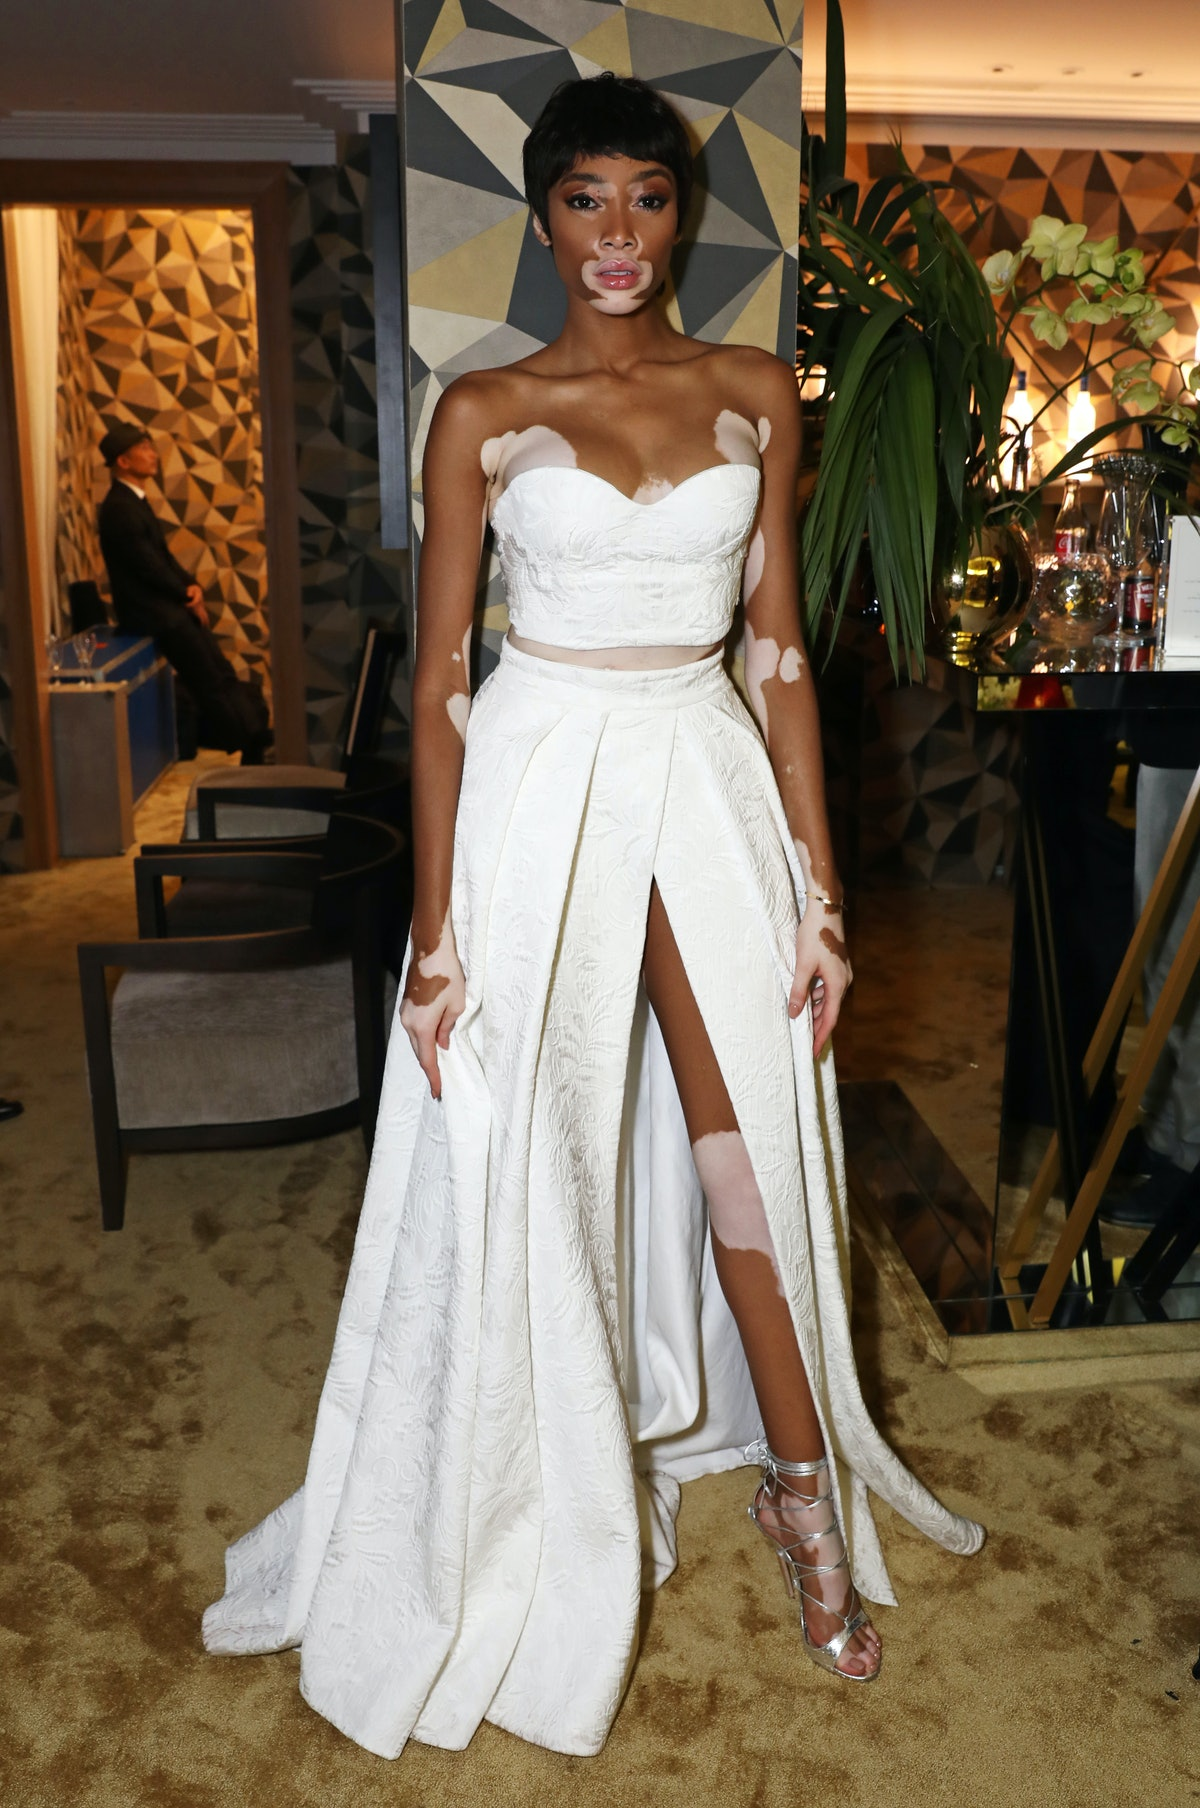 Chopard and Annabel's Host The Gentleman's Evening At The Hotel Martinez - 70th Cannes Film Festival